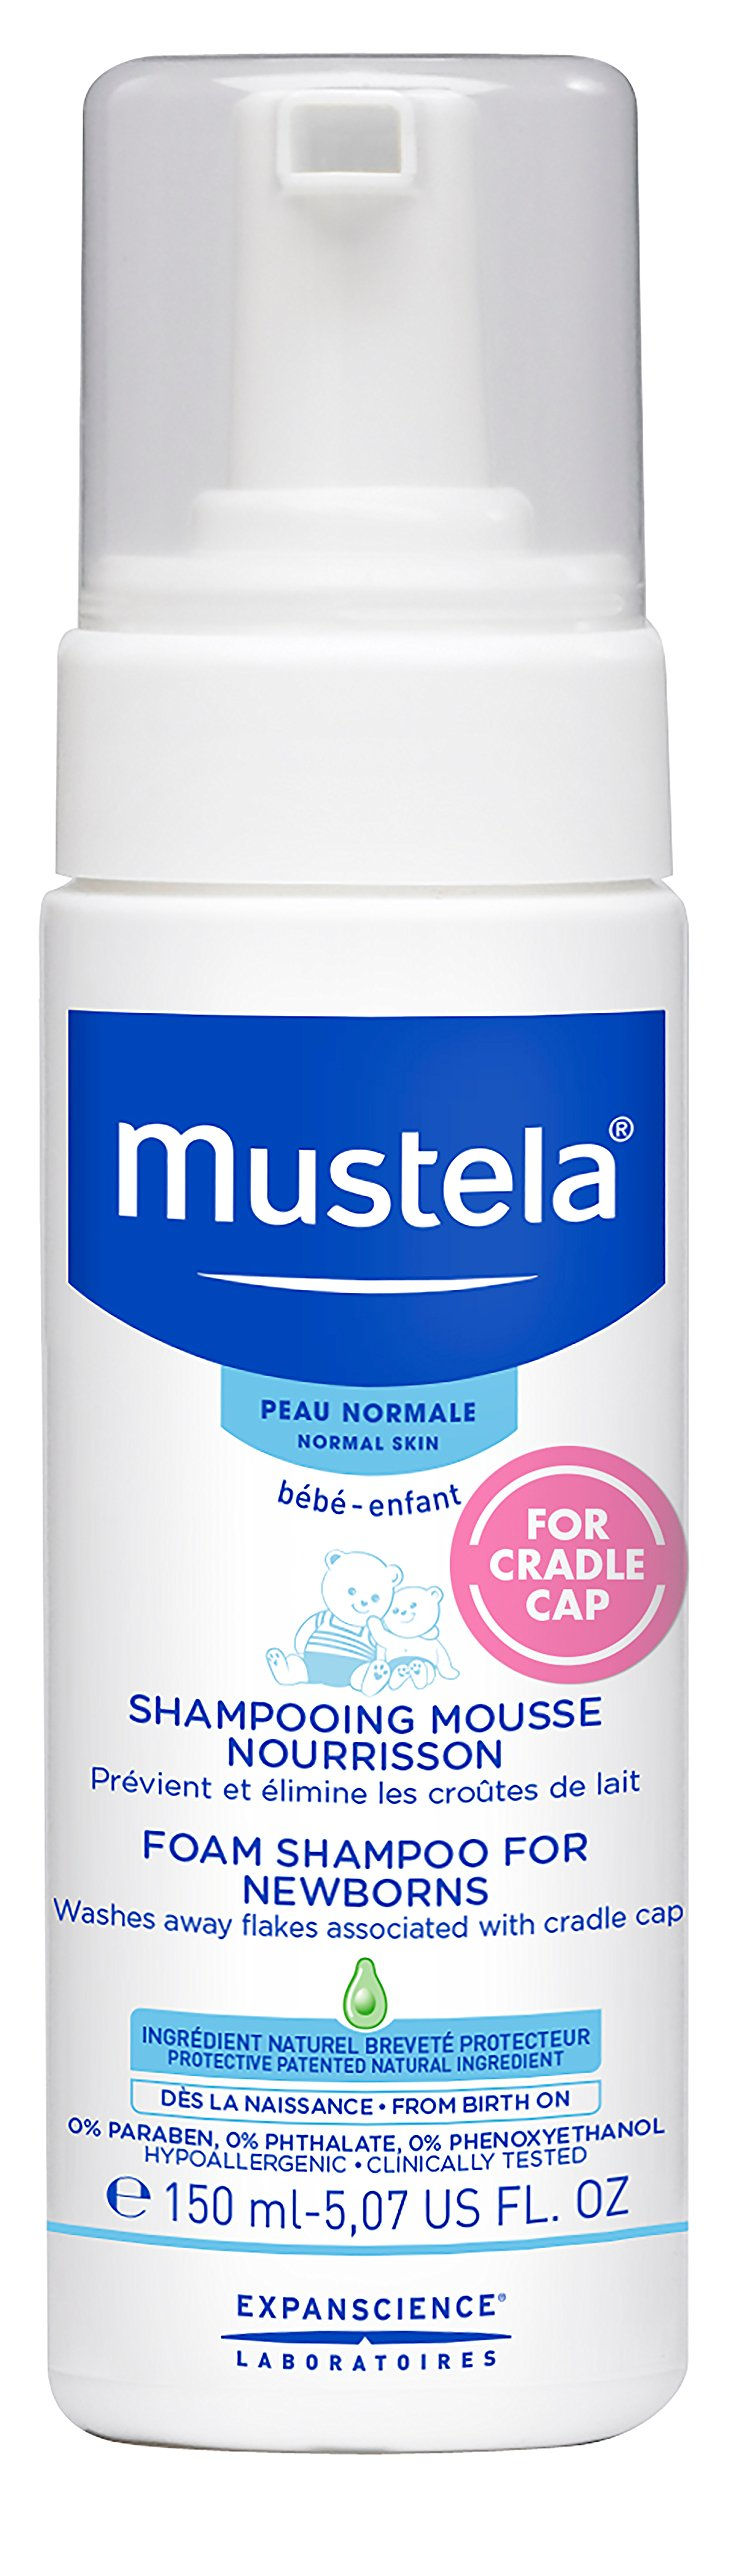 Mustela Foam Shampoo for Newborns, Baby Shampoo, Cradle Cap Treatment and Prevention, 5.07 fl.oz. by Mustela